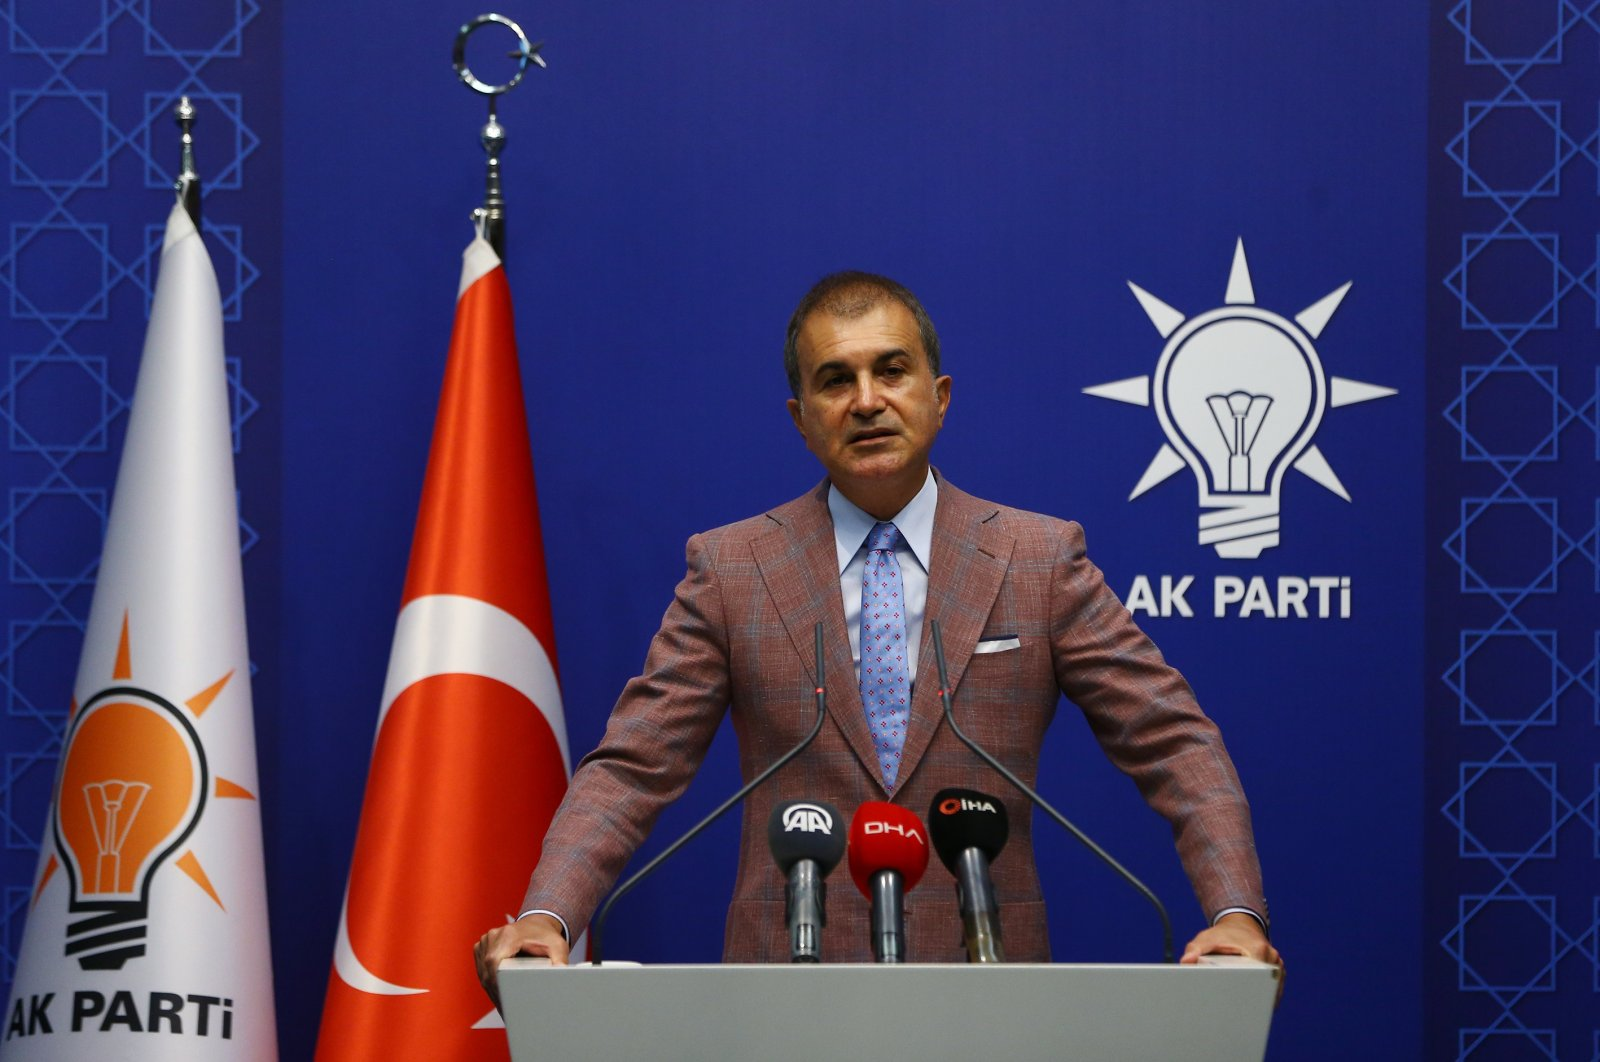 The ruling Justice and Development Party (AK Party) spokesperson Ömer Çelik speaks after a Central Decision and Executive Board meeting at party headquarters in the capital Ankara, Sept. 22, 2020. (AA Photo)